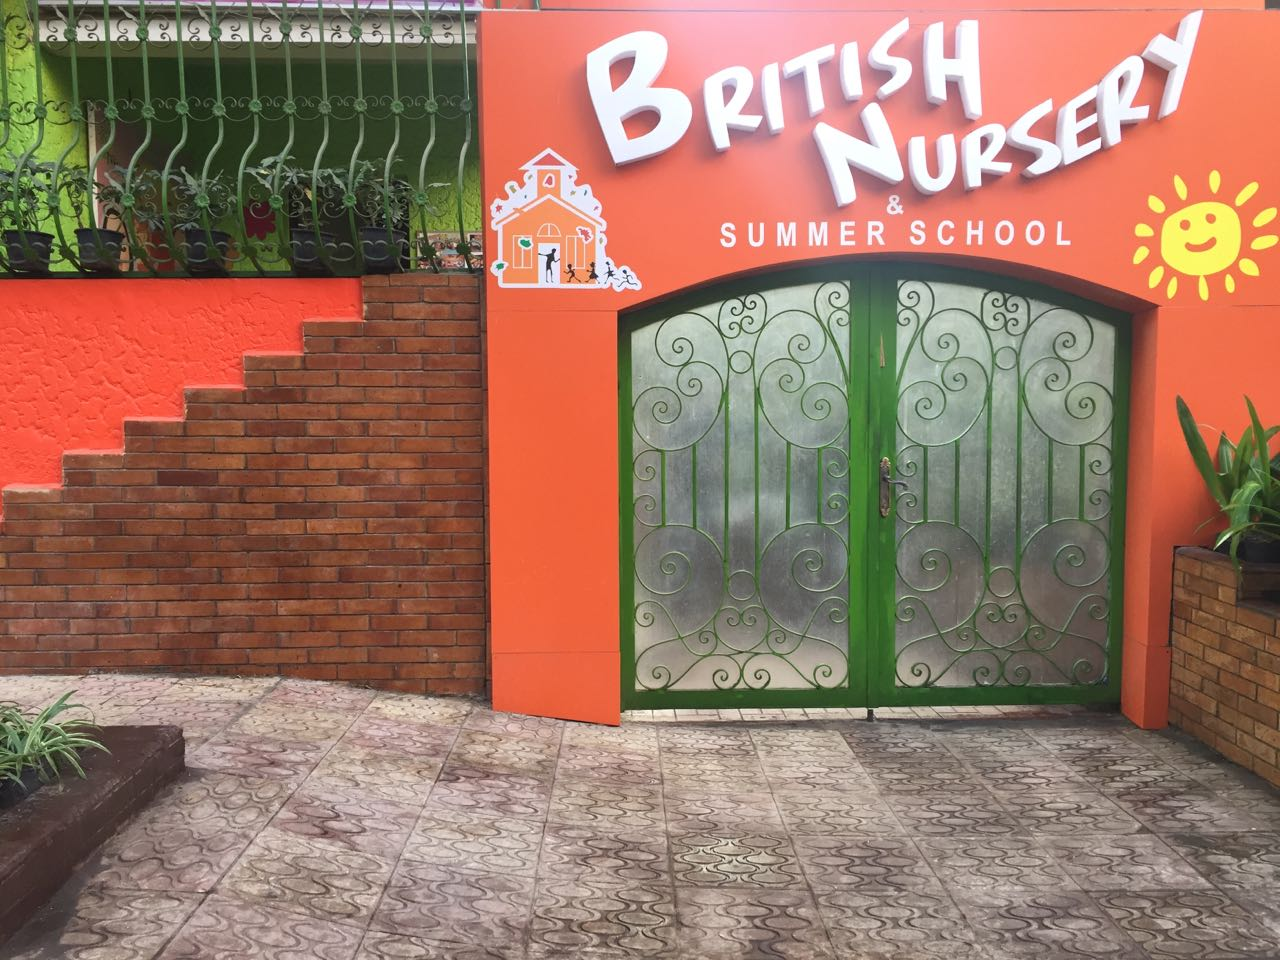 The British Nursery